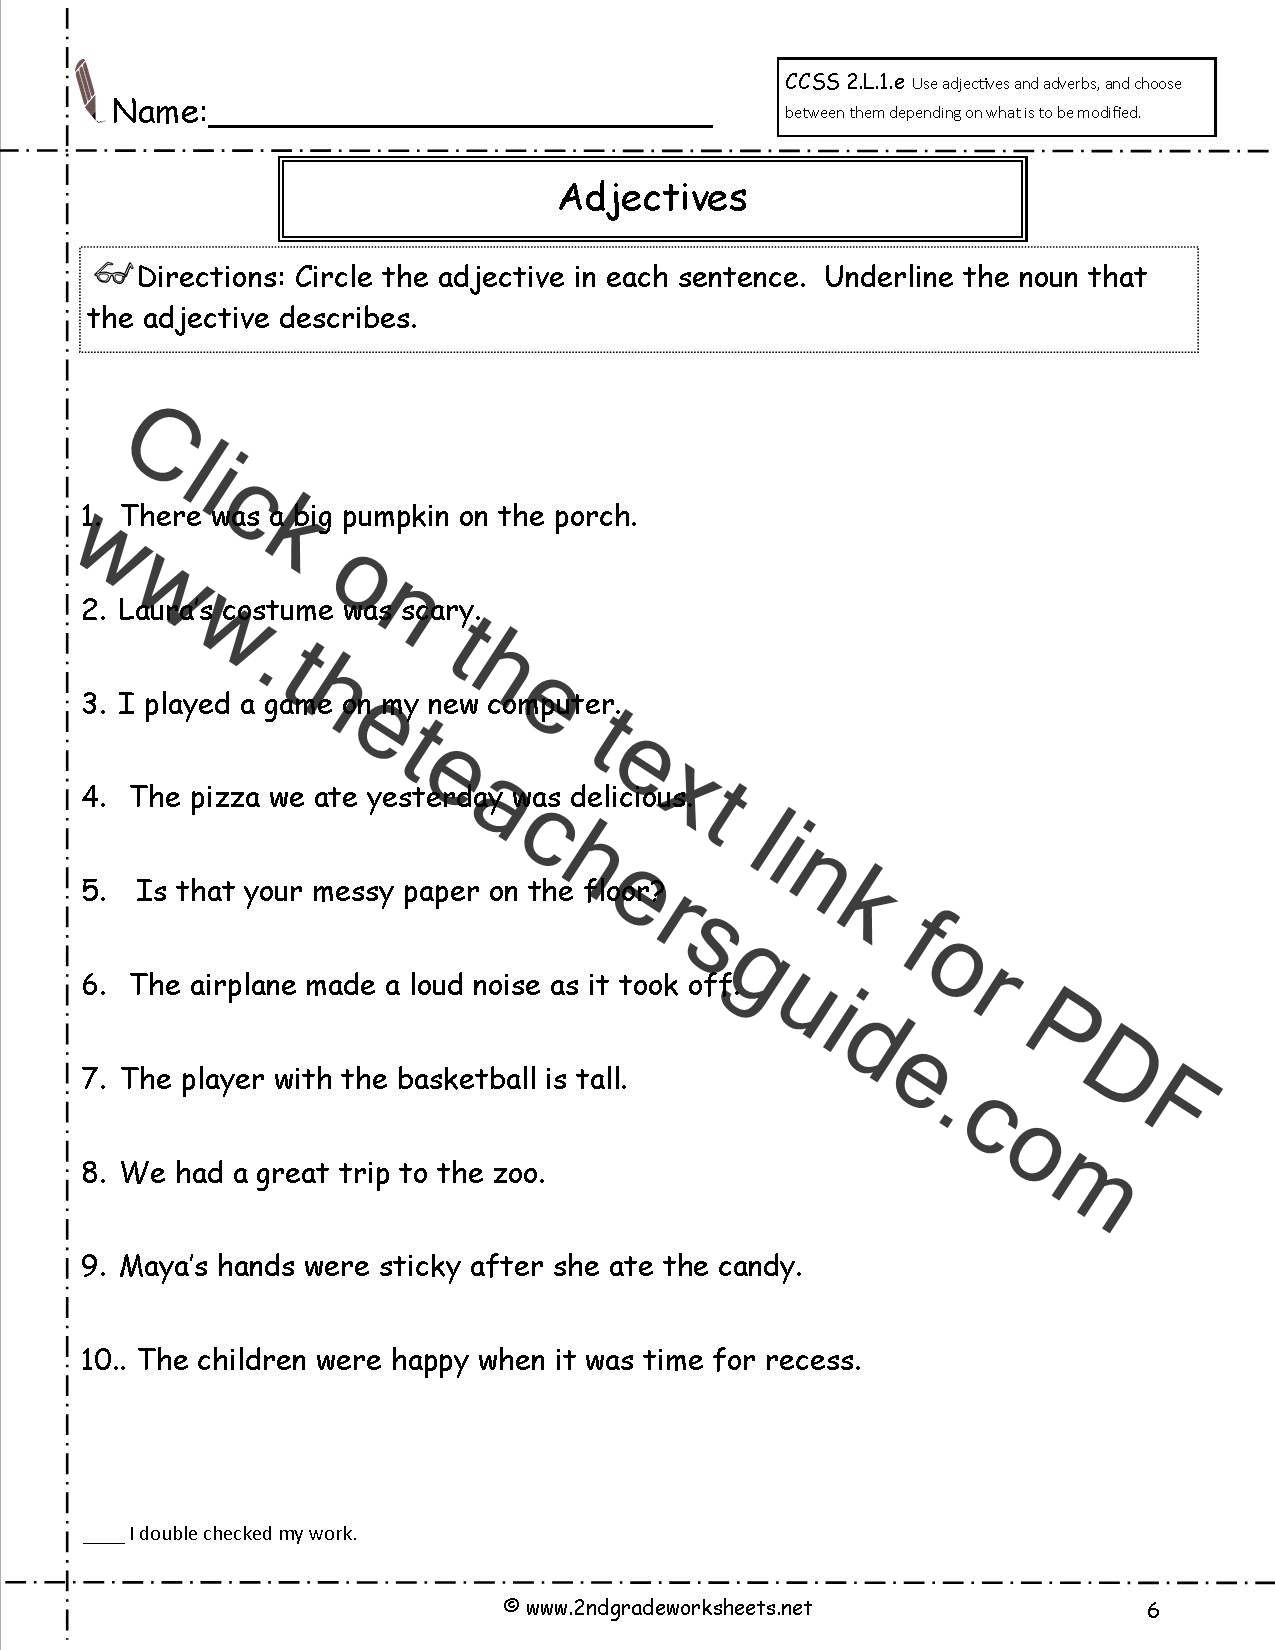 Free Using Adjectives and Adverbs Worksheets – Adjectives Worksheet